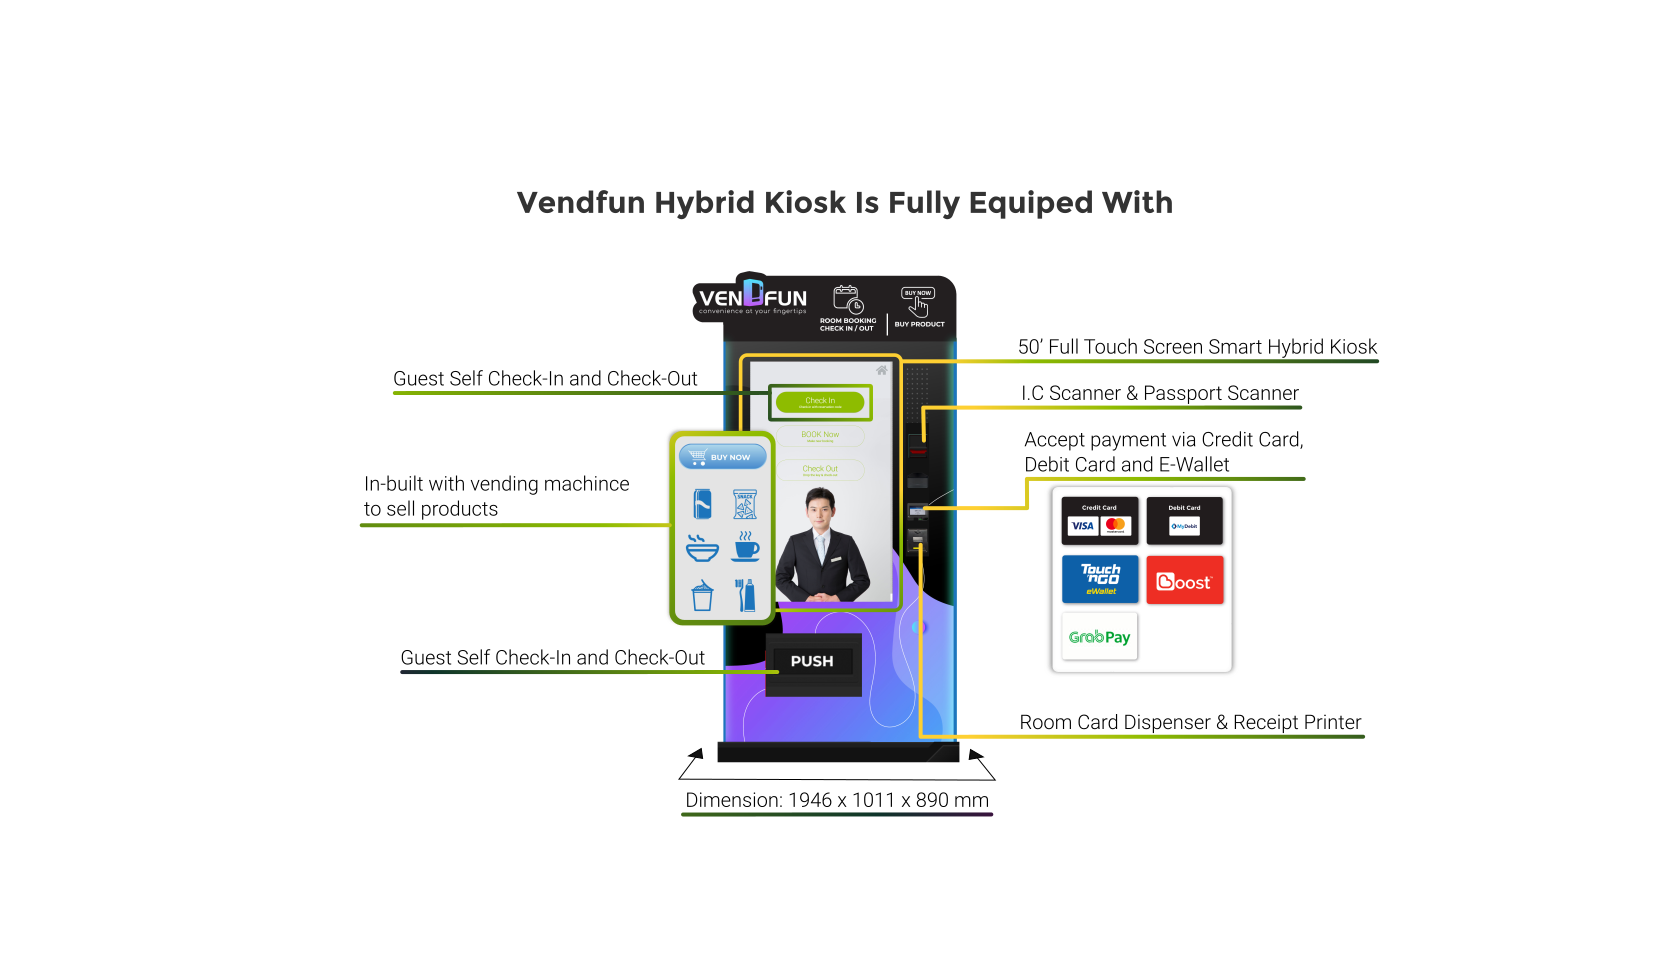 4_Vendfun Hybrid Kiosk Is Fully Equiped